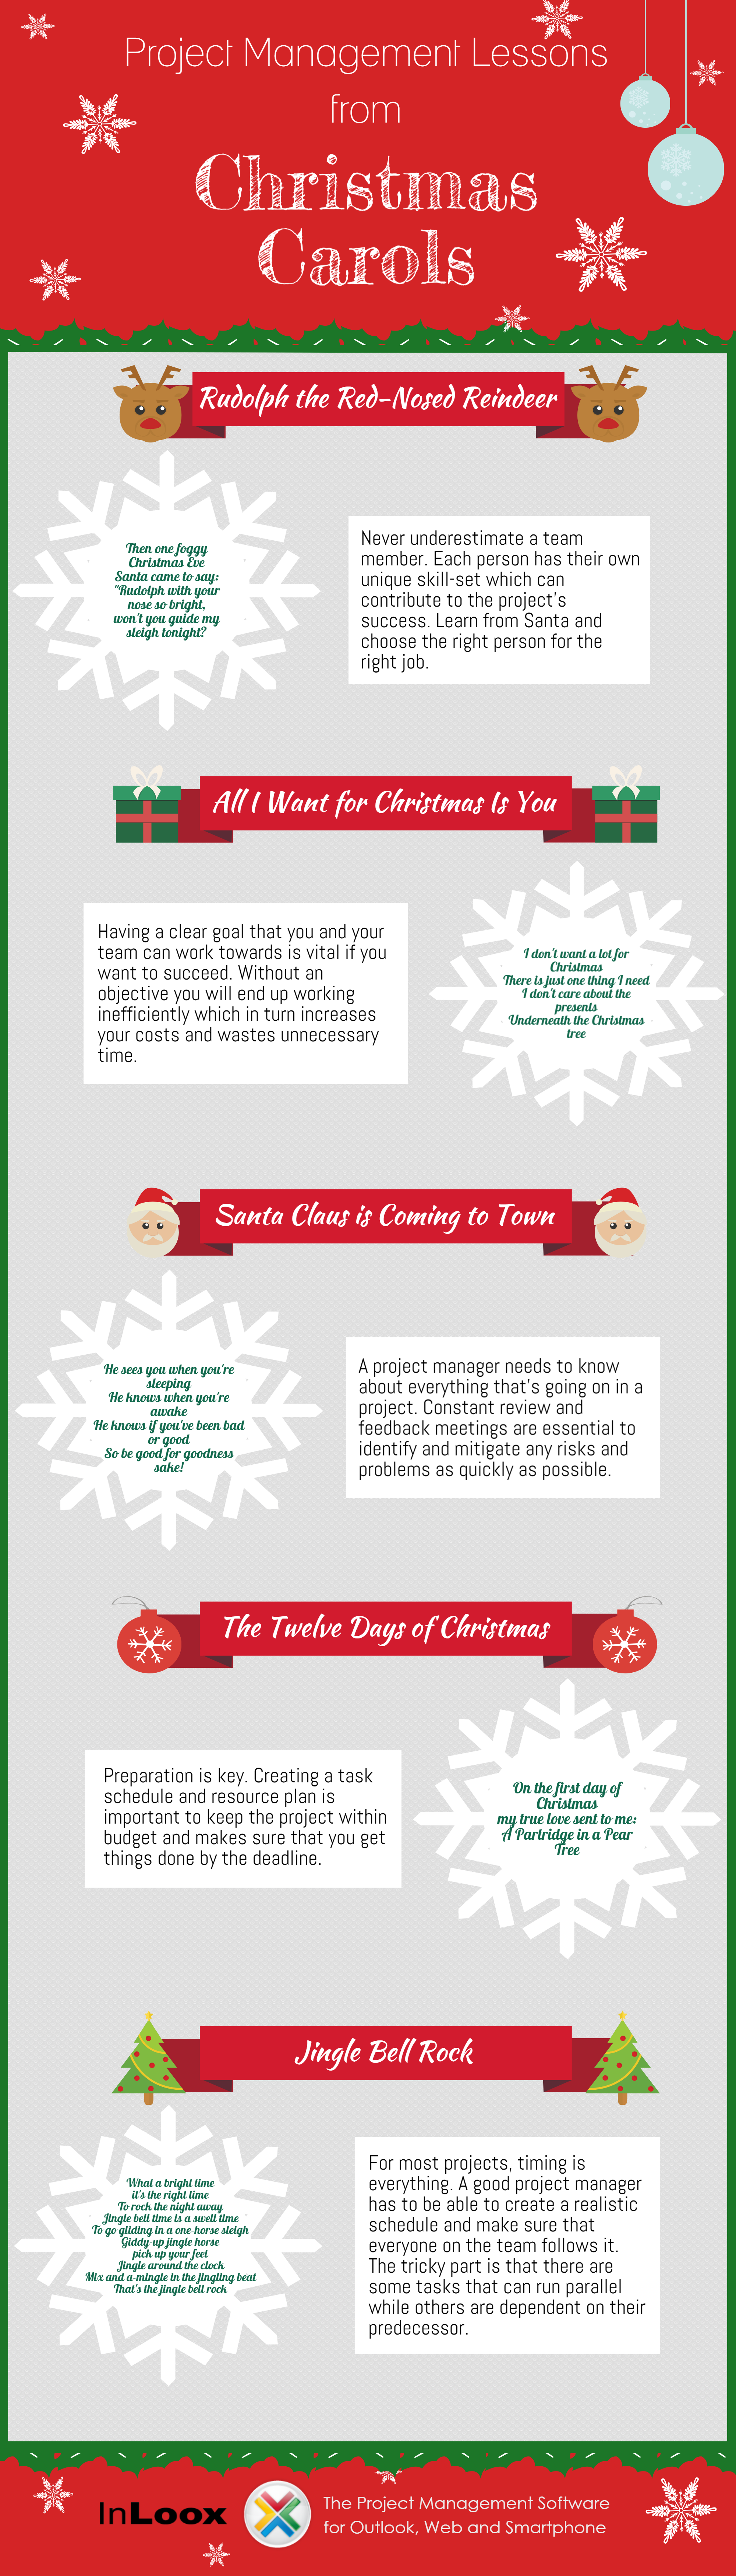 Infographic: PM Lessons from Christmas Carols